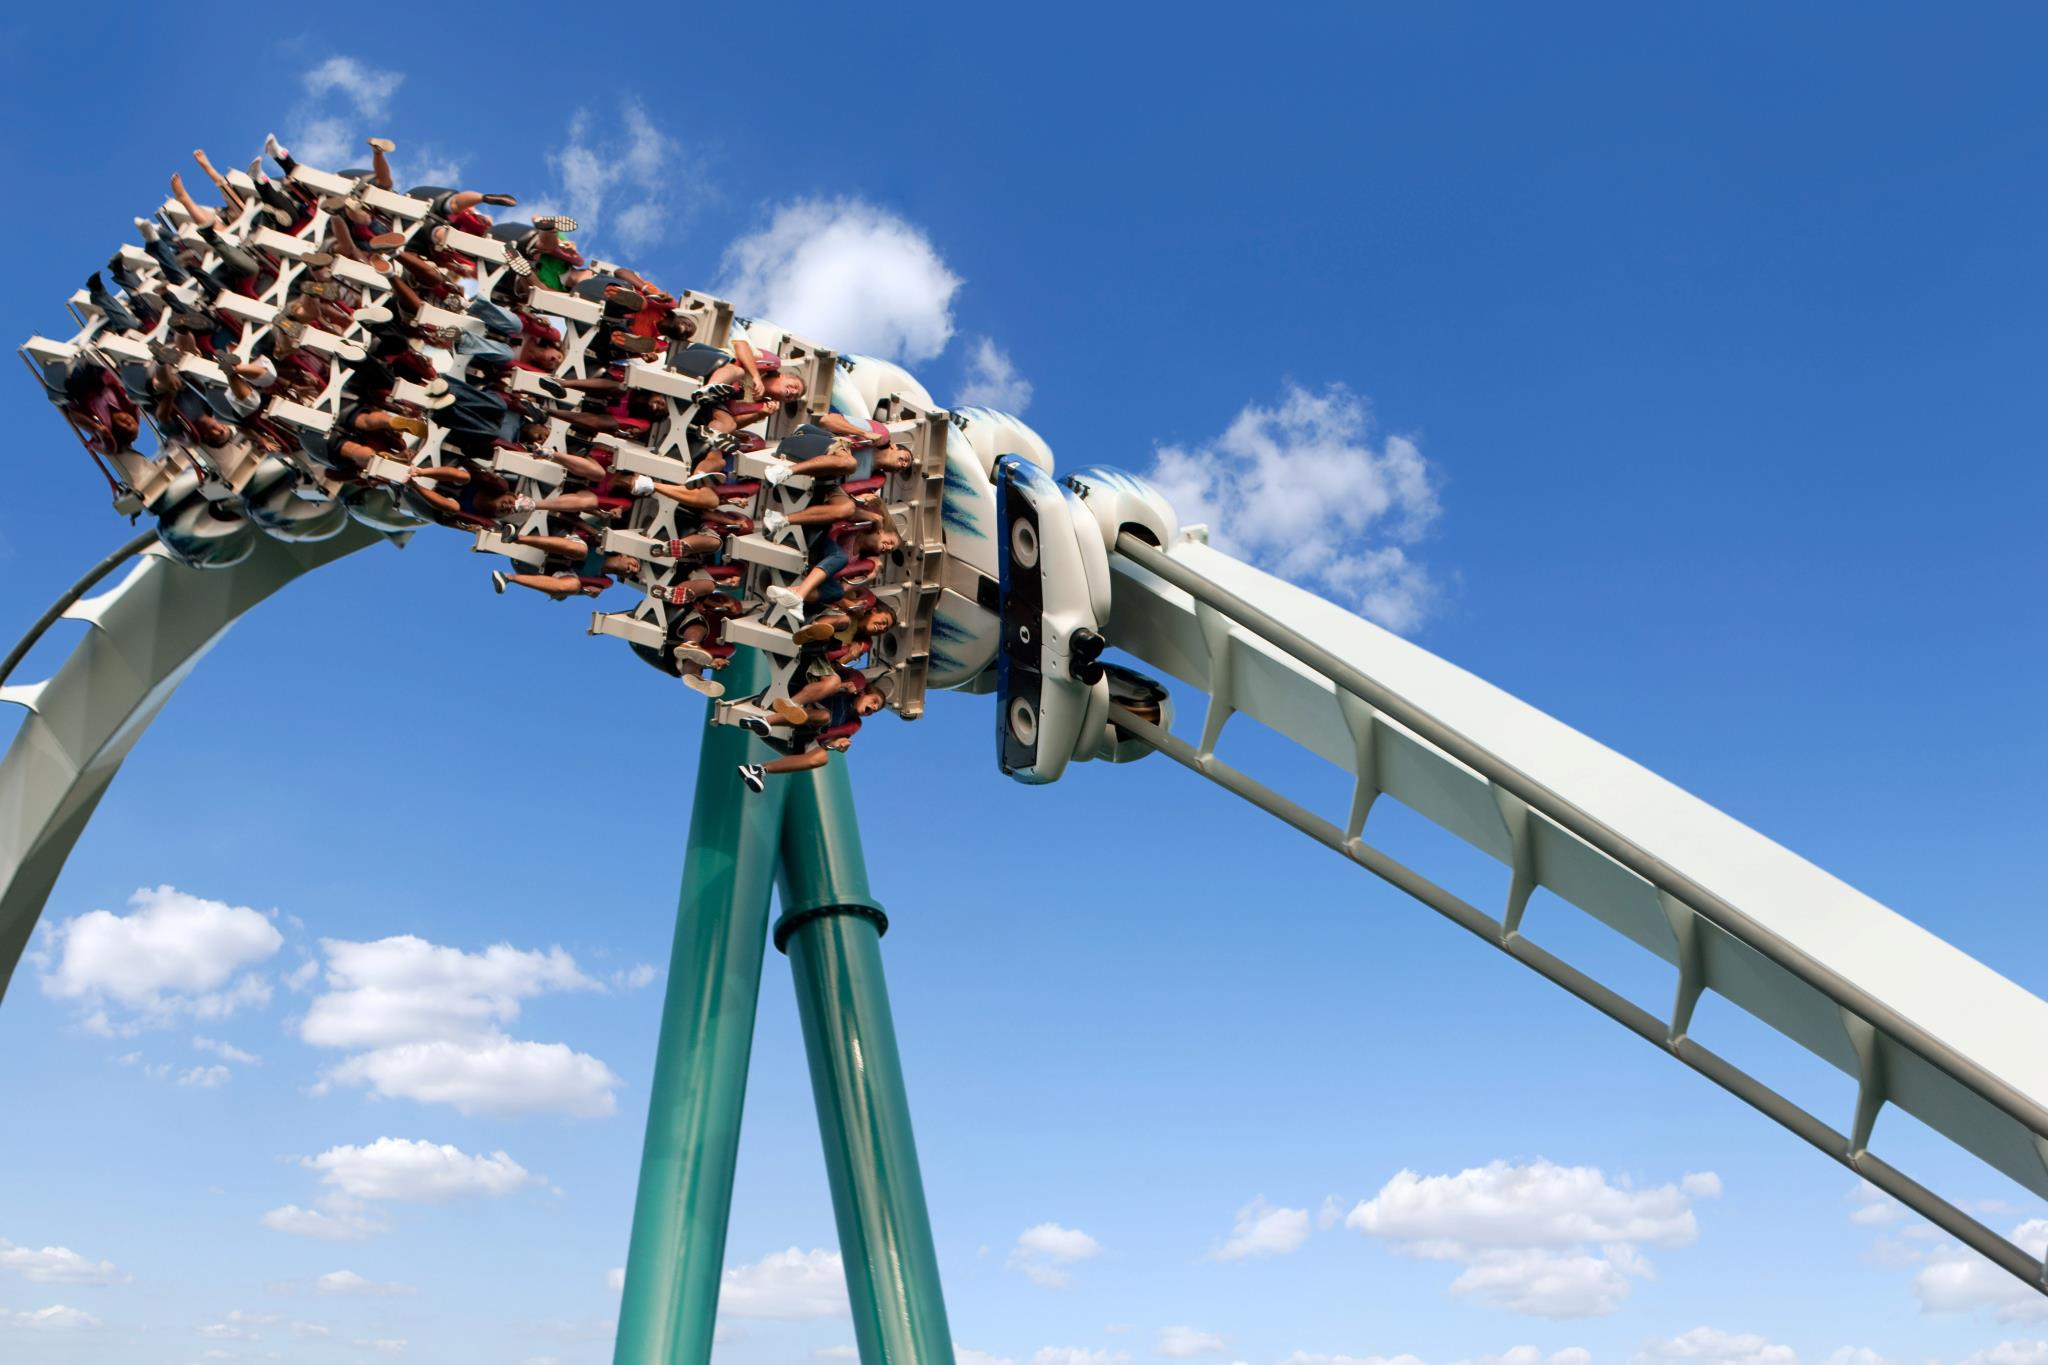 Behind The Thrills Holiday World And Busch Gardens Williamsburg To Be Featured On Travel